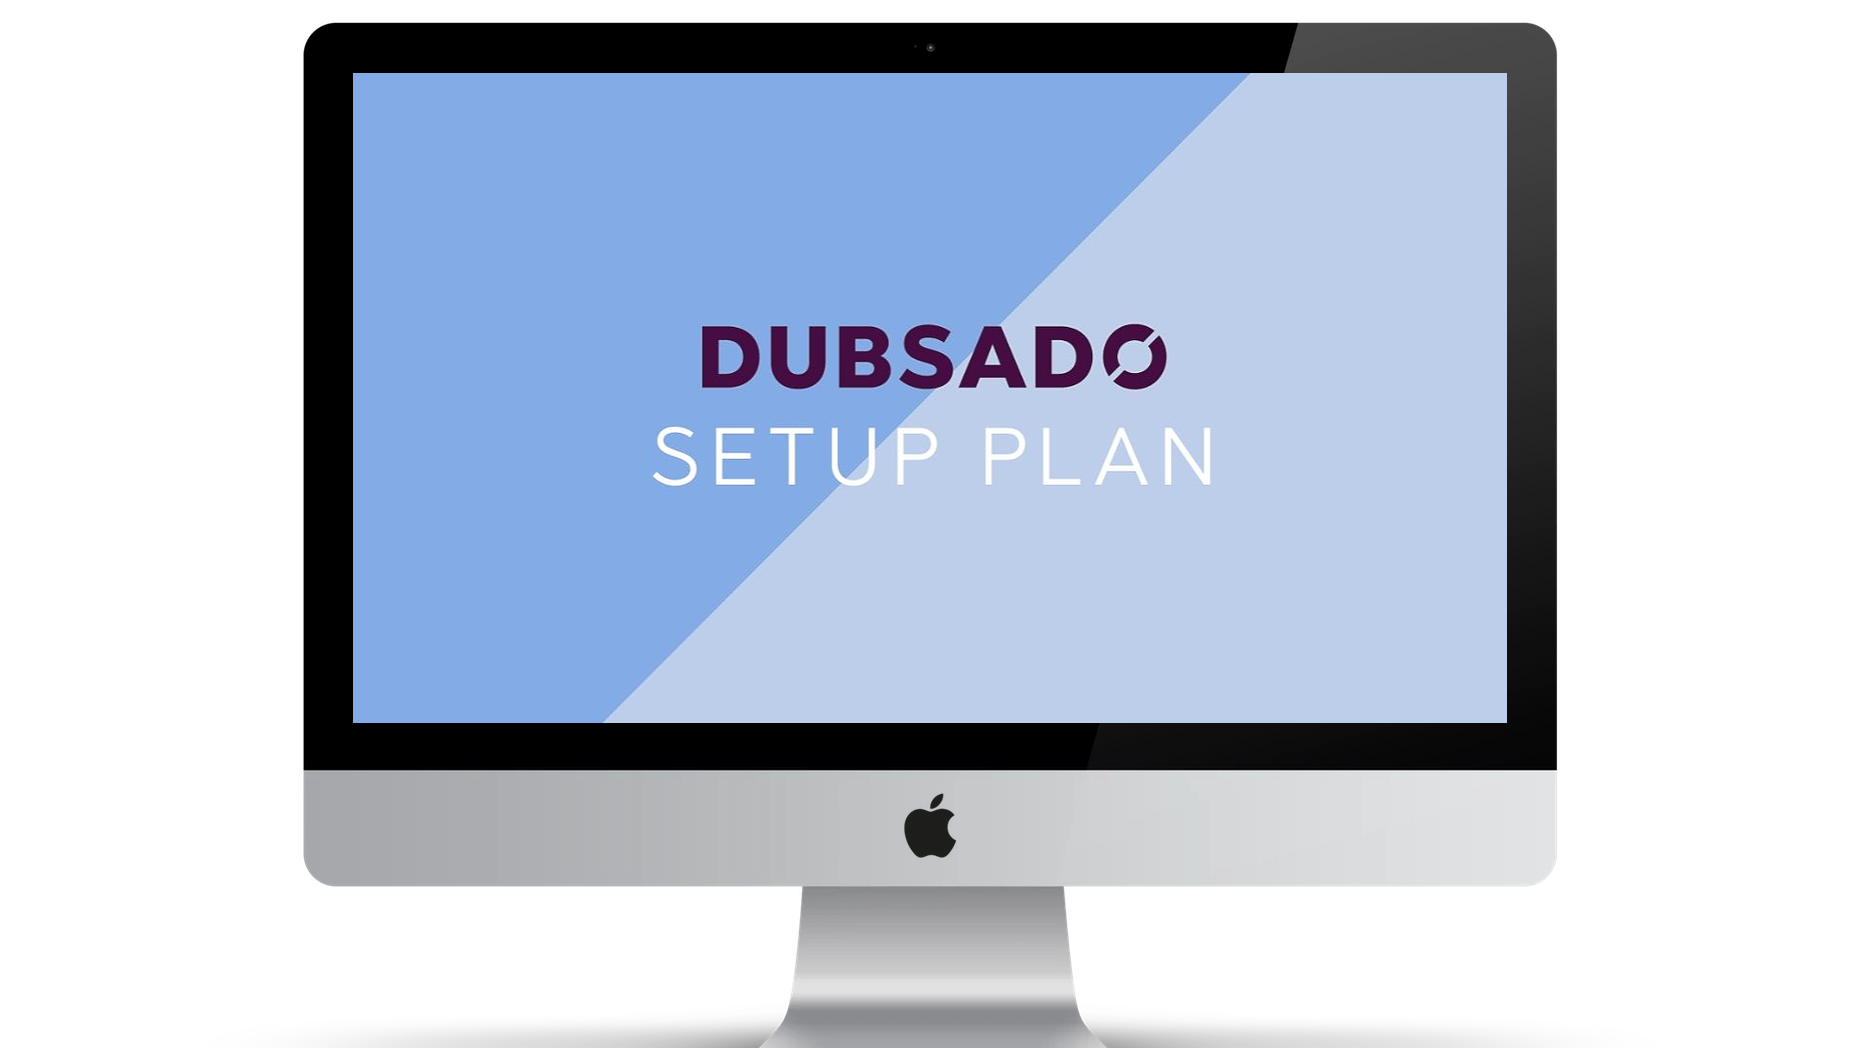 Get Dubsado set up with a step-by-step project plan. It's available in Asana, Trello, and Word formats so you can use your favorite project management tool along with your favorite client management system, Dubsado CRM.